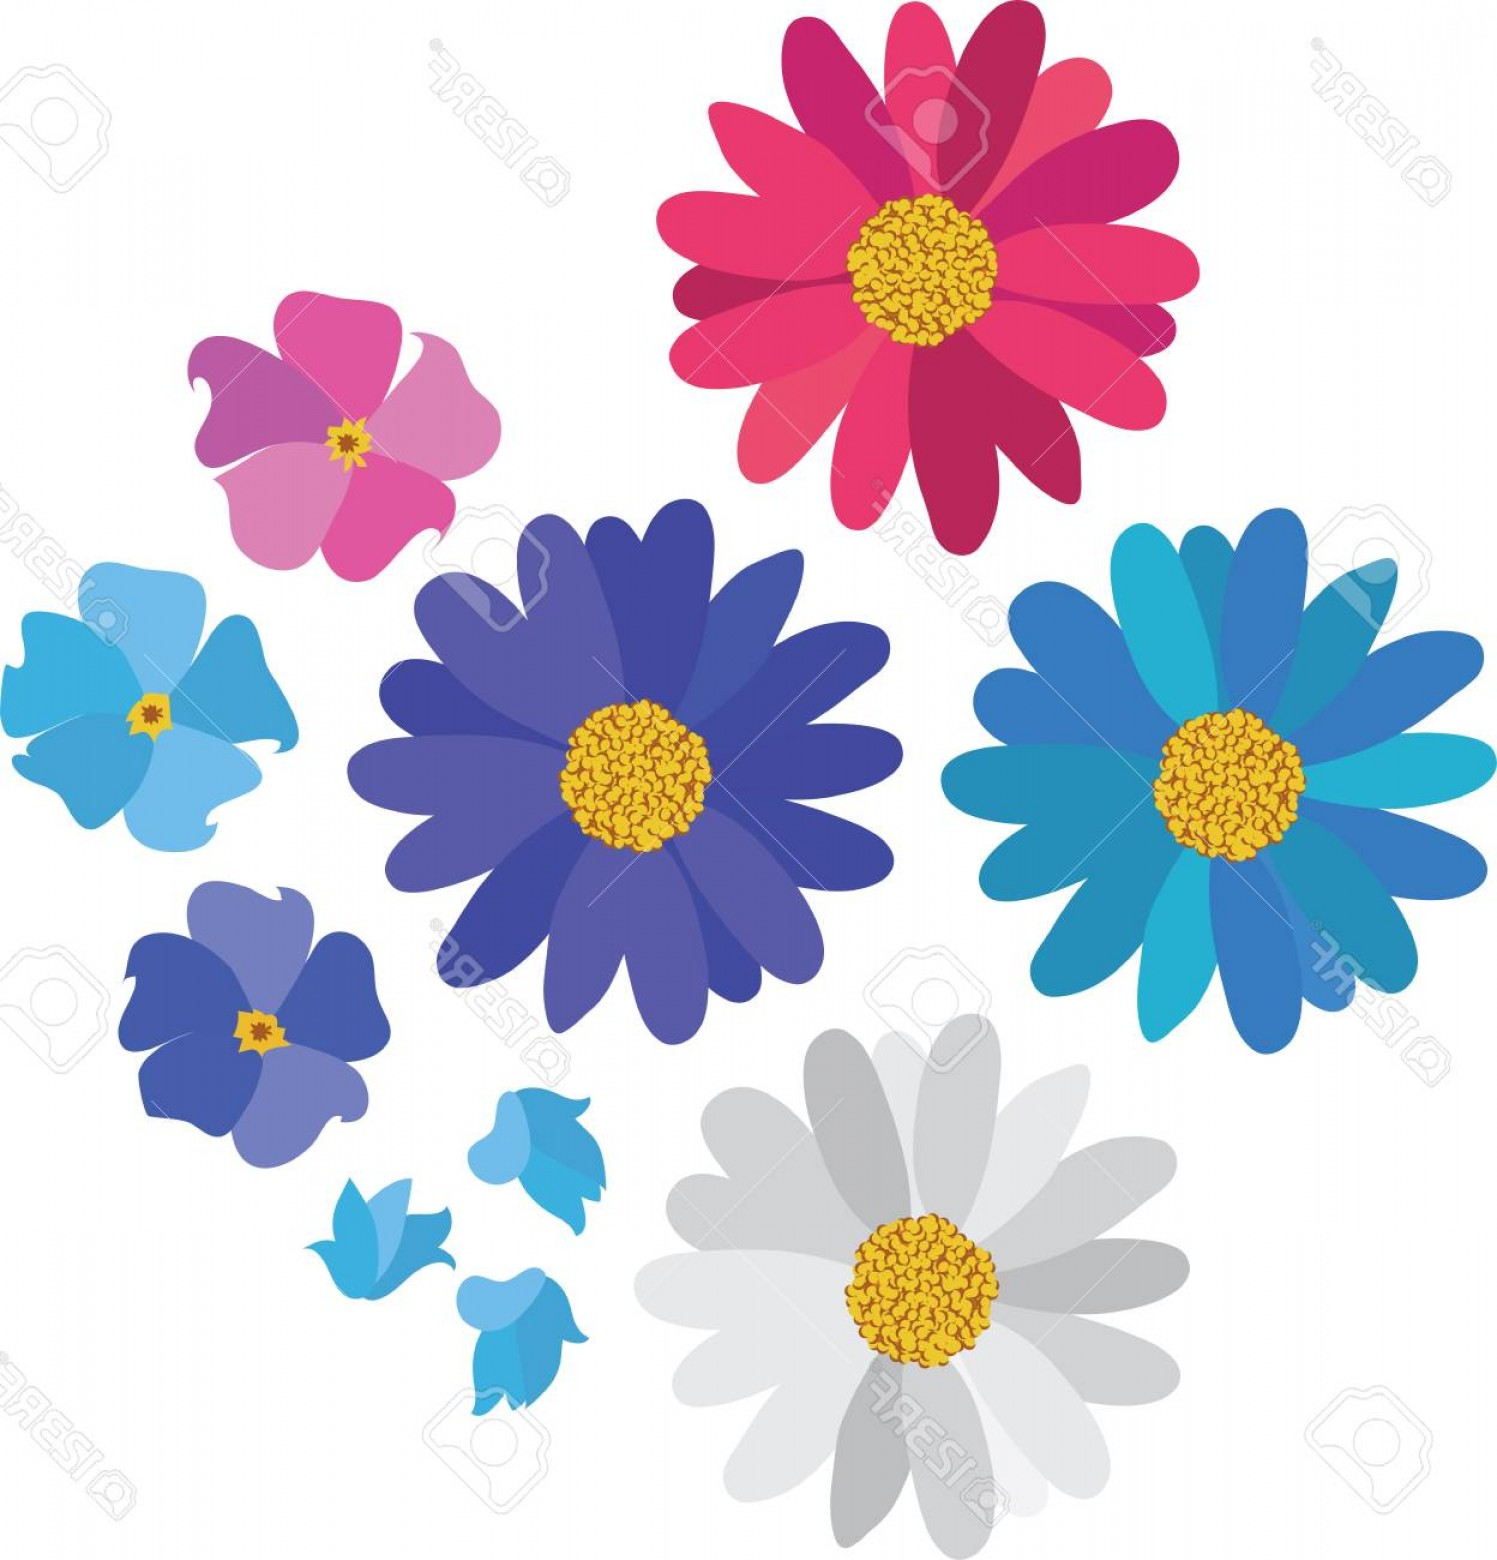 Simple Vector Daisy: Photostock Vector Simple Flower Daisy Collection Isolated On White For Design